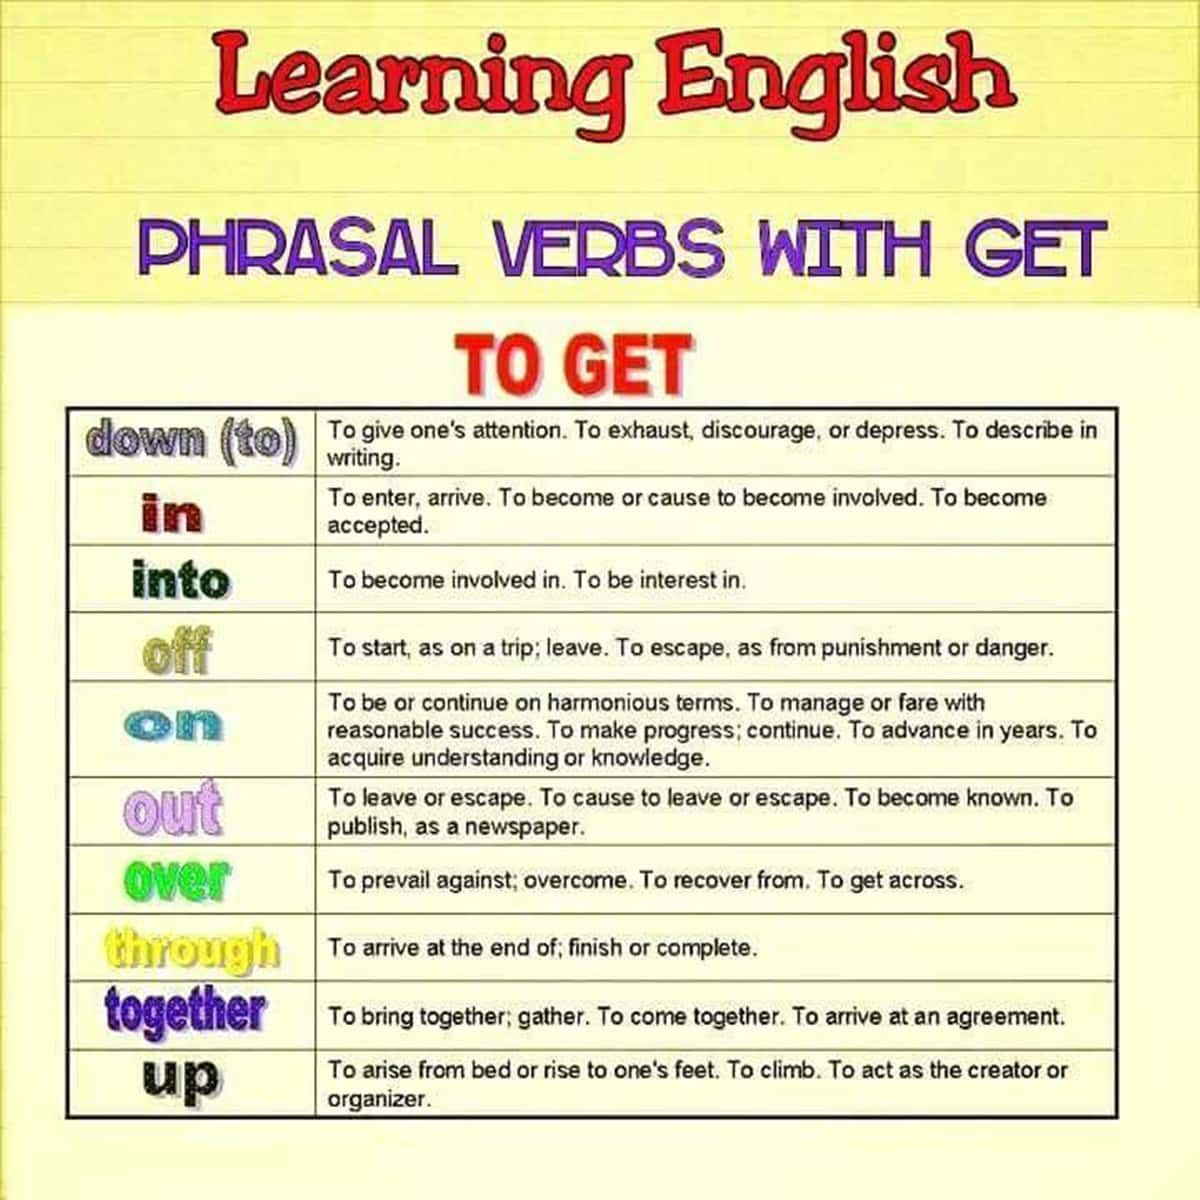 Commonly Used Phrasal Verbs With Get In English With Meaning And Examples Eslbuzz Learning English Egitim Ingilizce [ 1200 x 1200 Pixel ]